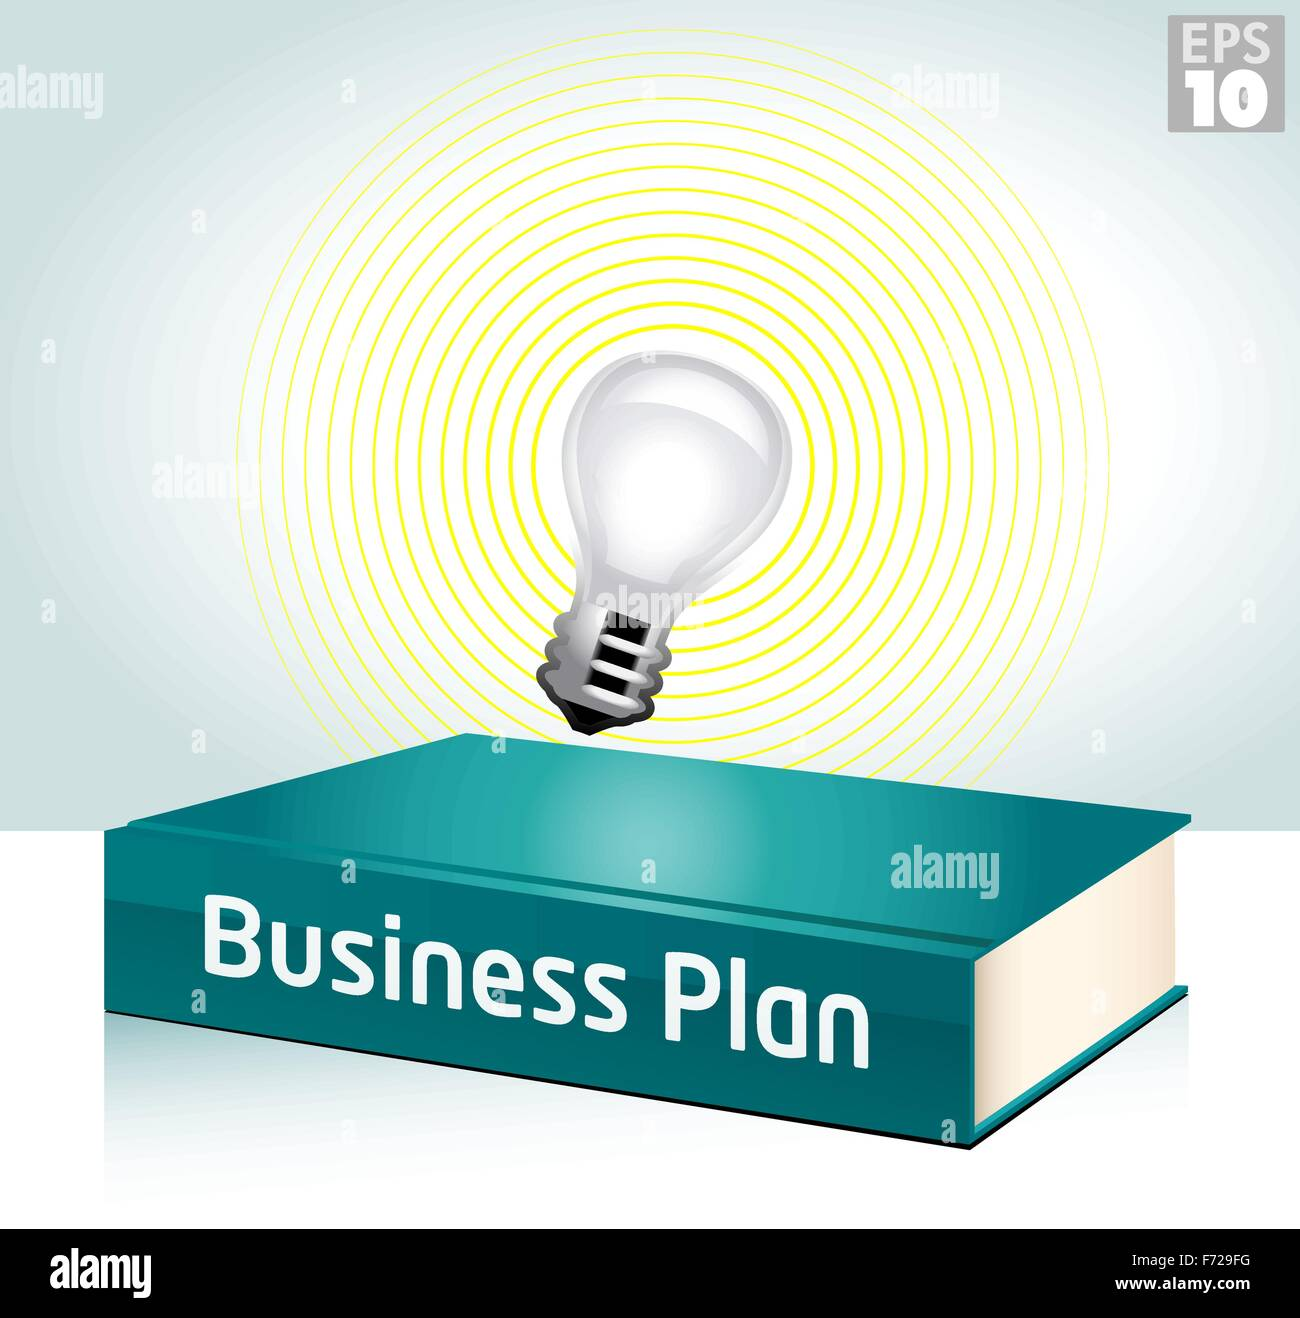 Entrepreneurial business idea using a light bulb to illuminate a business plan hardcover book - Stock Vector